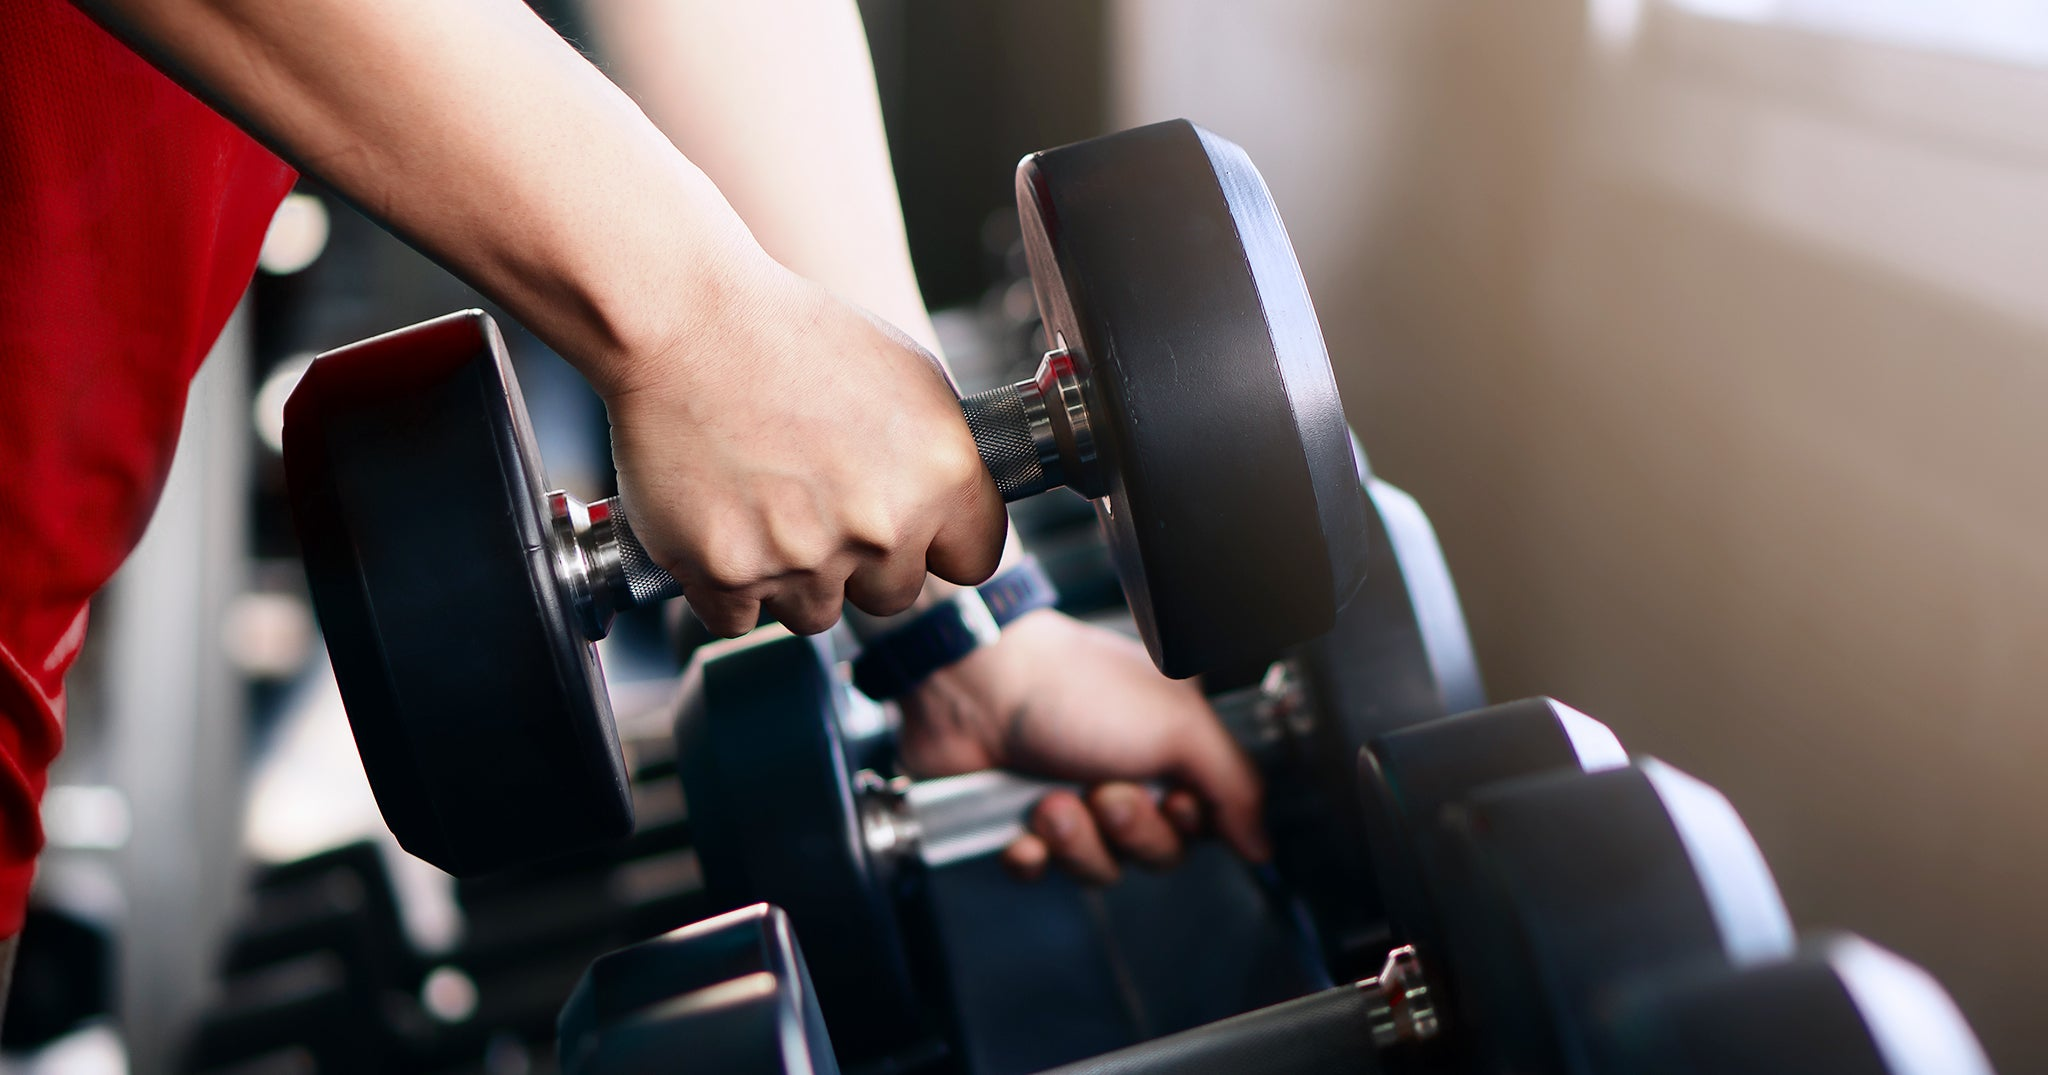 weight training, person lifting dumbbells